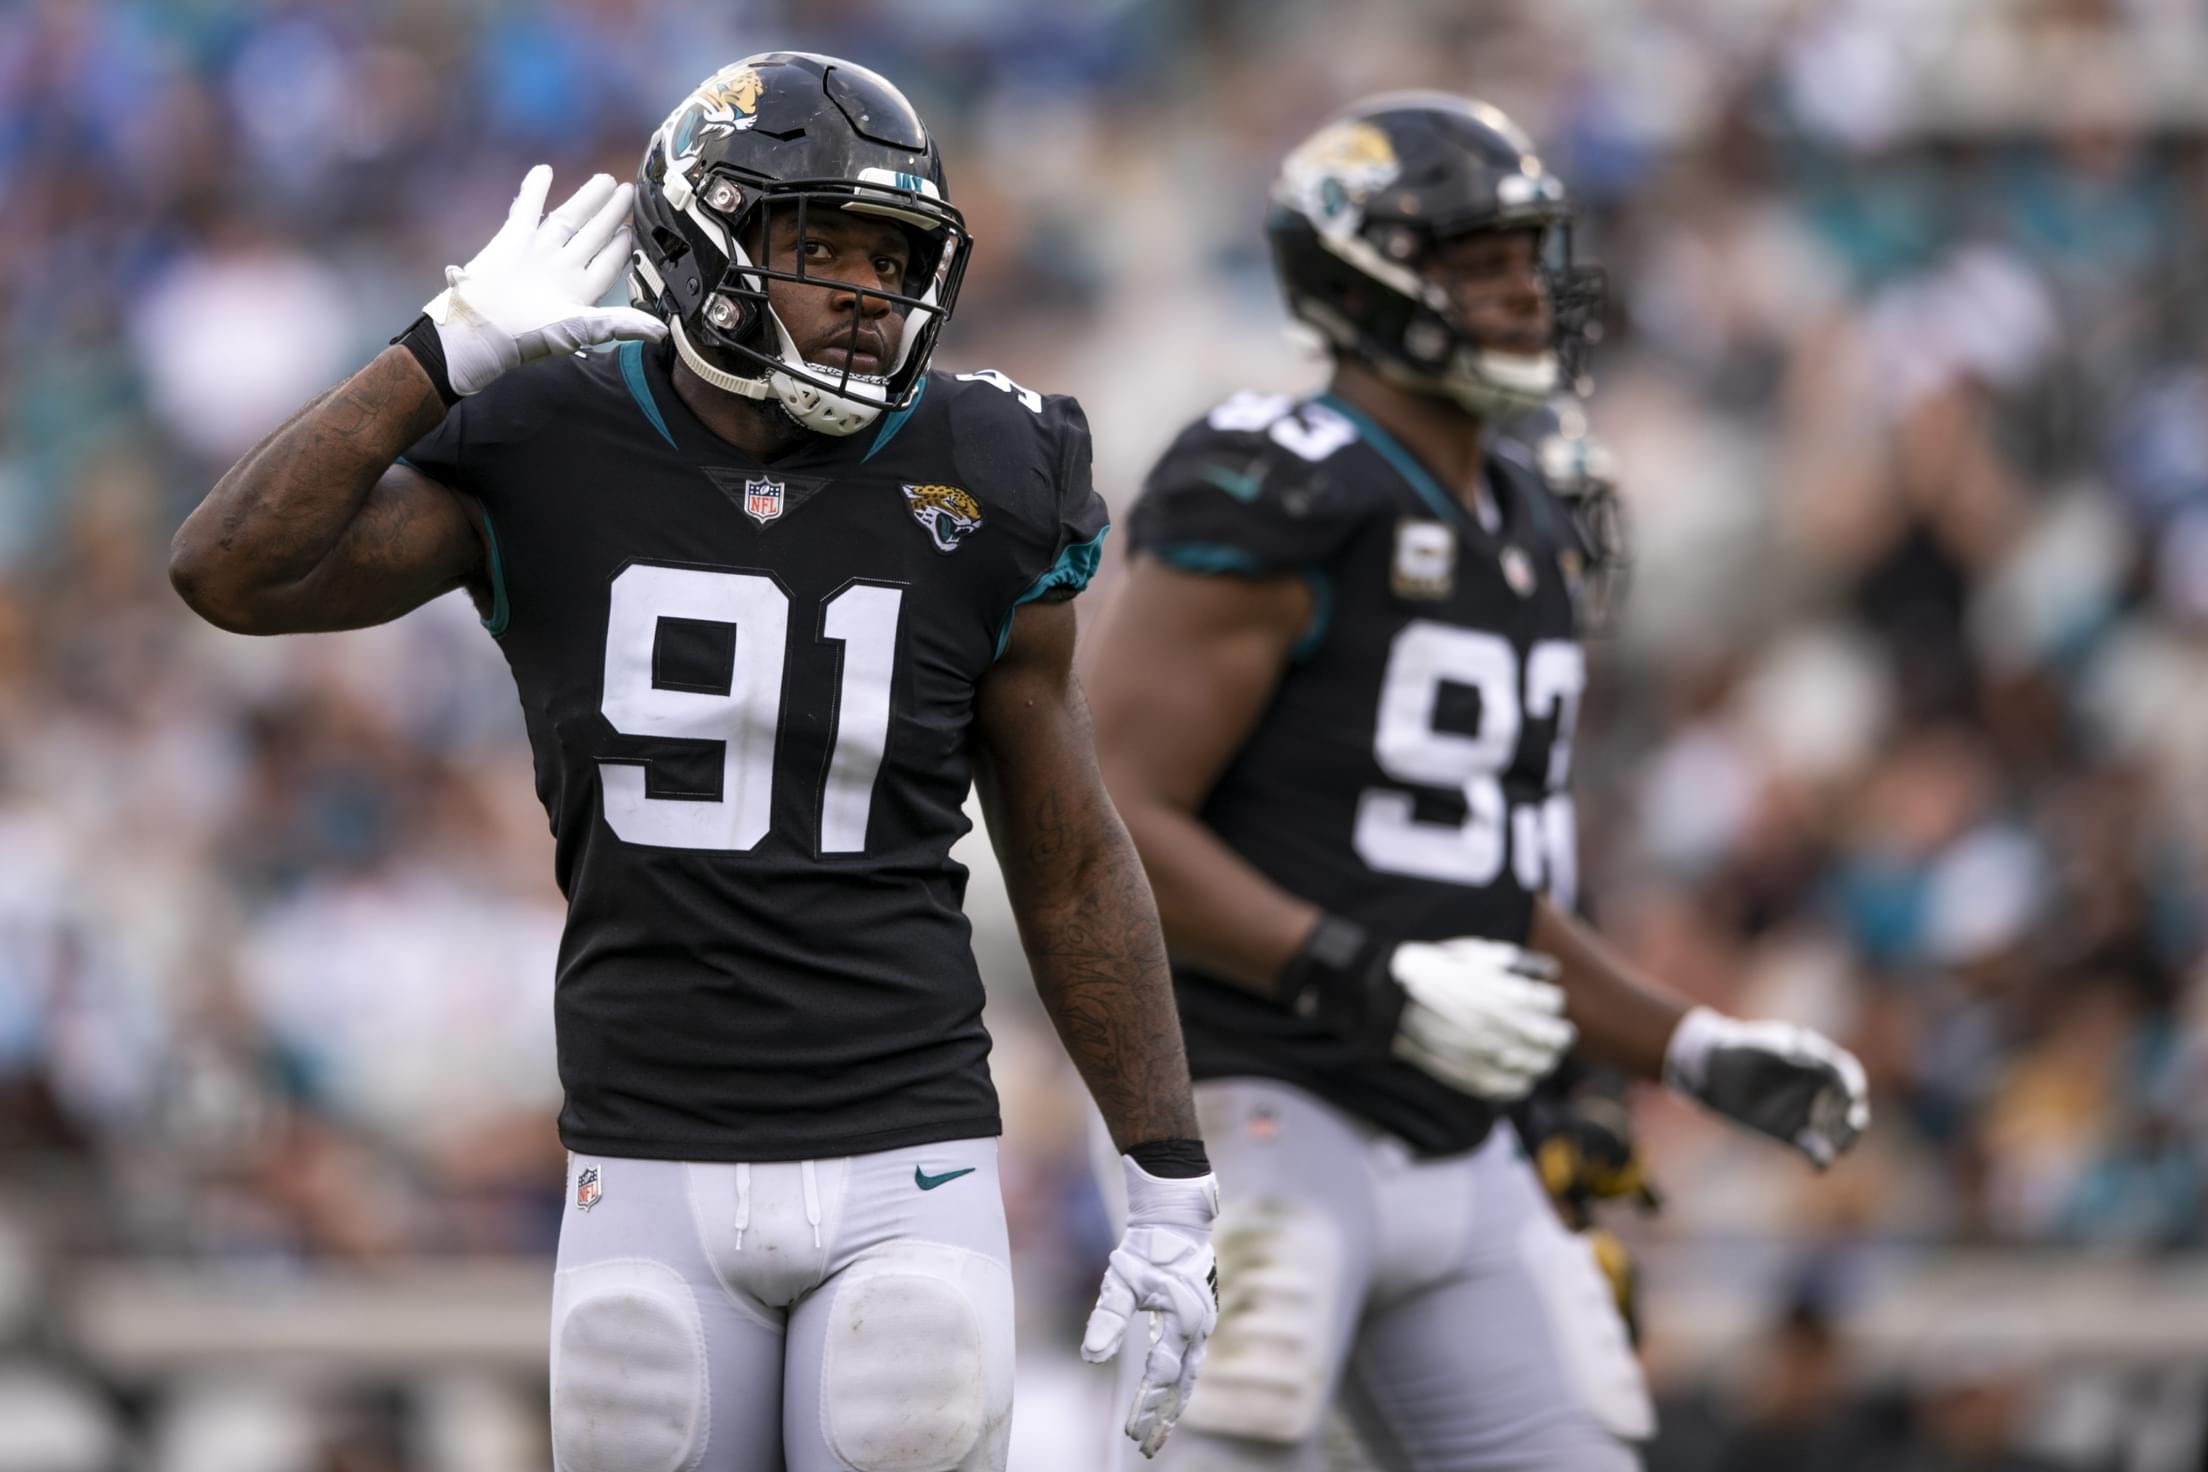 LAMM AT LARGE: Yannick Ngakoue and Jaguars both right about his contract